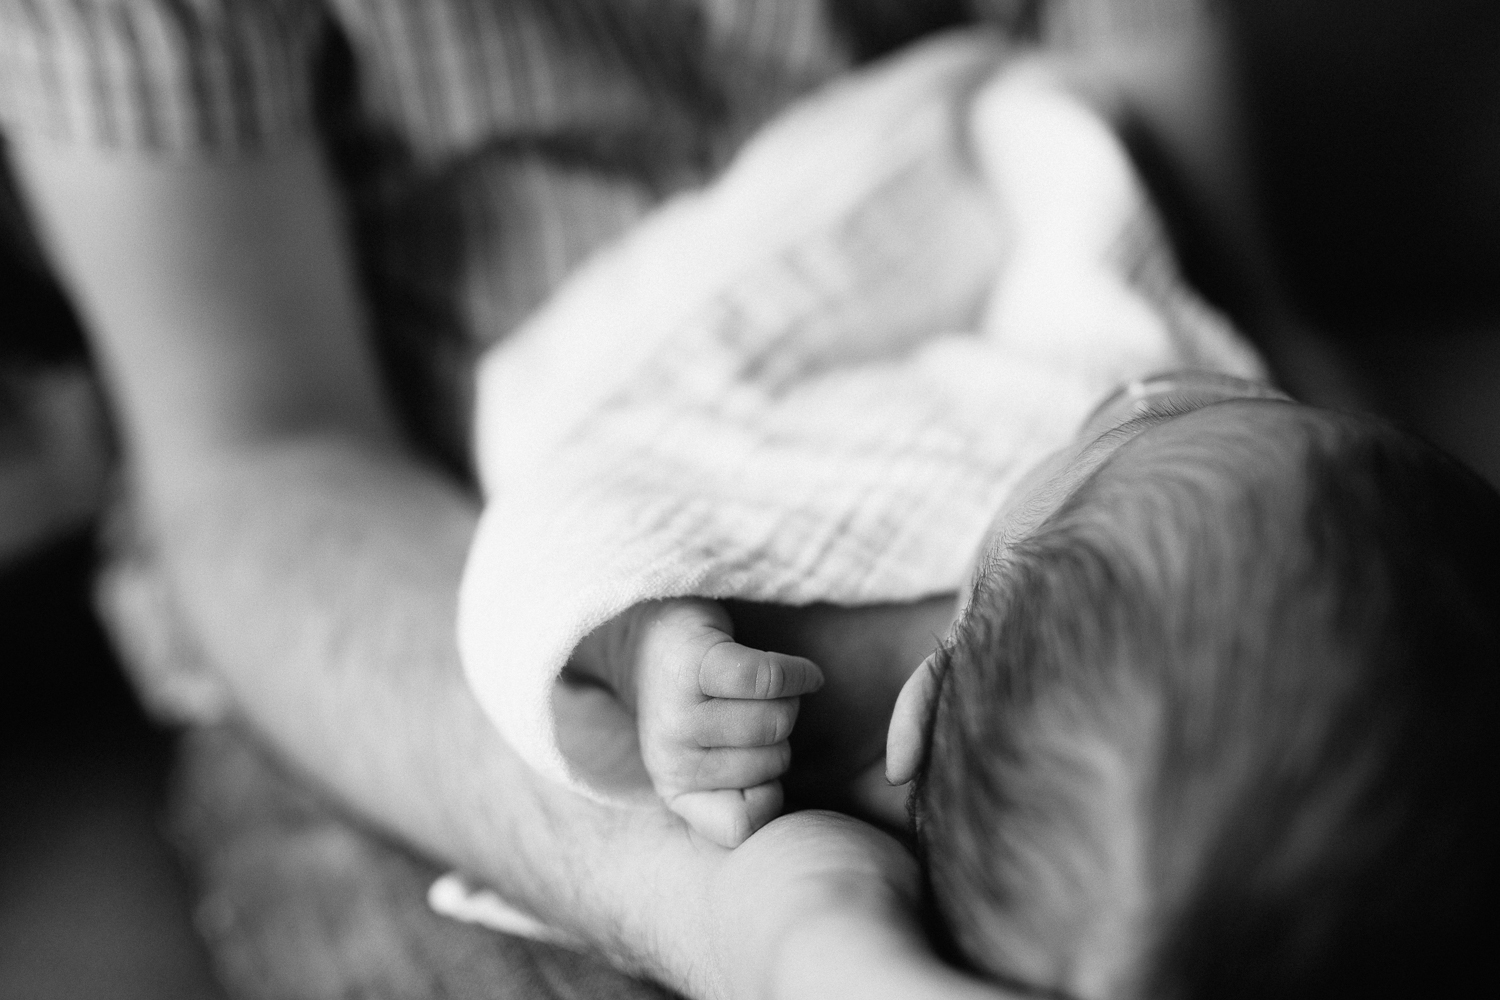 2 week old baby girl in swaddle asleep in father's arms, close up of hand - Barrie Lifestyle Photography